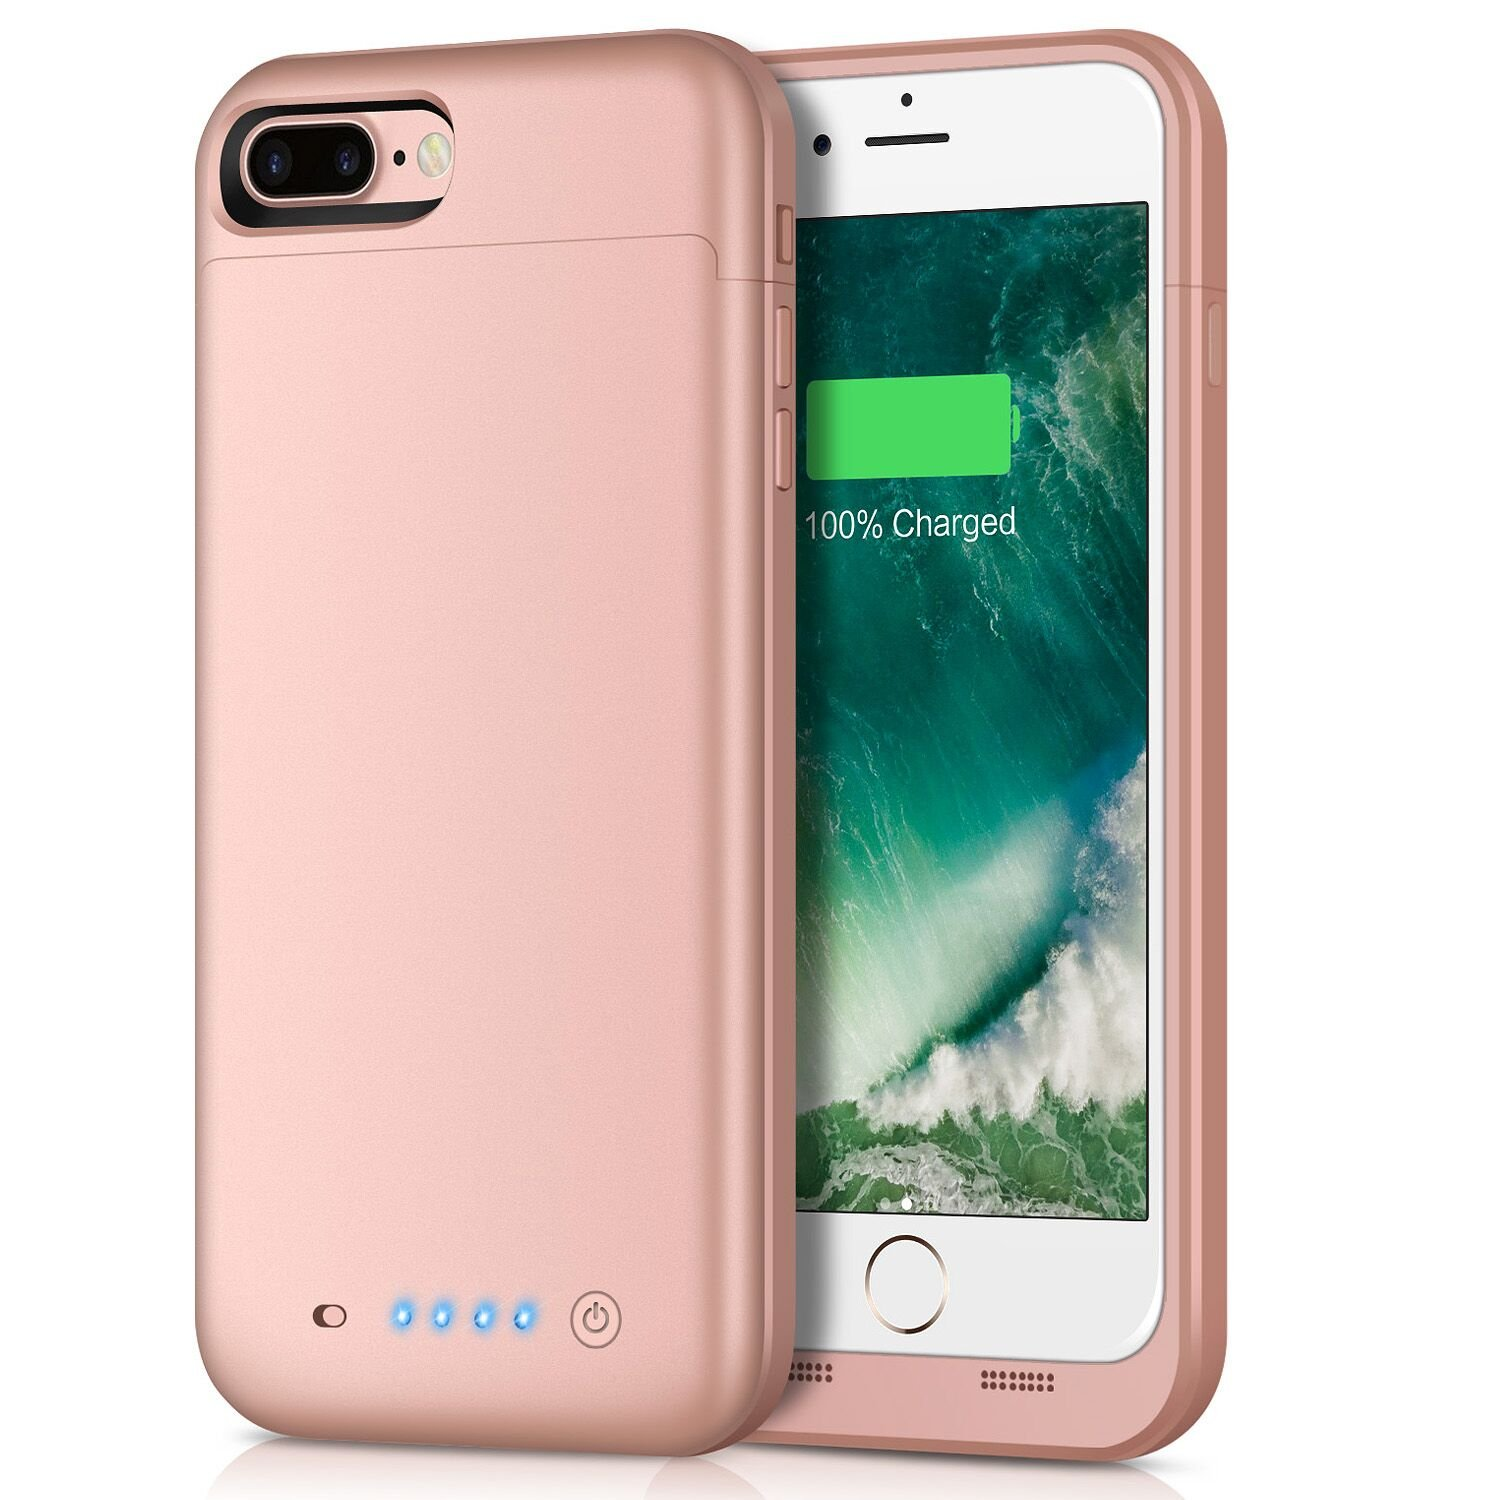 Fang iPhone 8 Plus/7 Plus Battery Case,7000mAh Battery Pack Charger Case for 8 Plus Extended Portable Battery Charging Case for iPhone 7 Plus,8 Plus (Rose Gold)